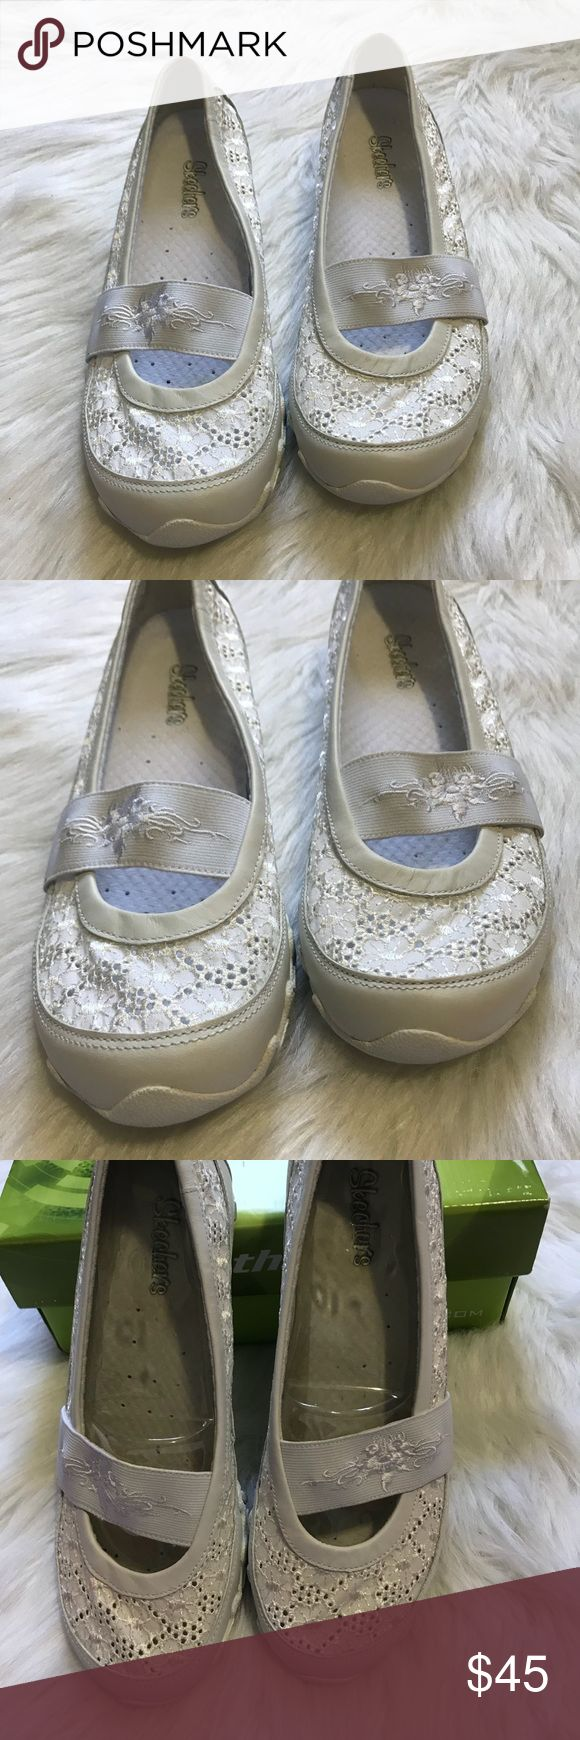 Women Skechers slip on casual shoes This amazing pair of slip on Skechers has beautiful texture detail and very comfortable. Pair with you favorite pair of jeans or cute shorts and have a comfortable day. Skechers Shoes Athletic Shoes